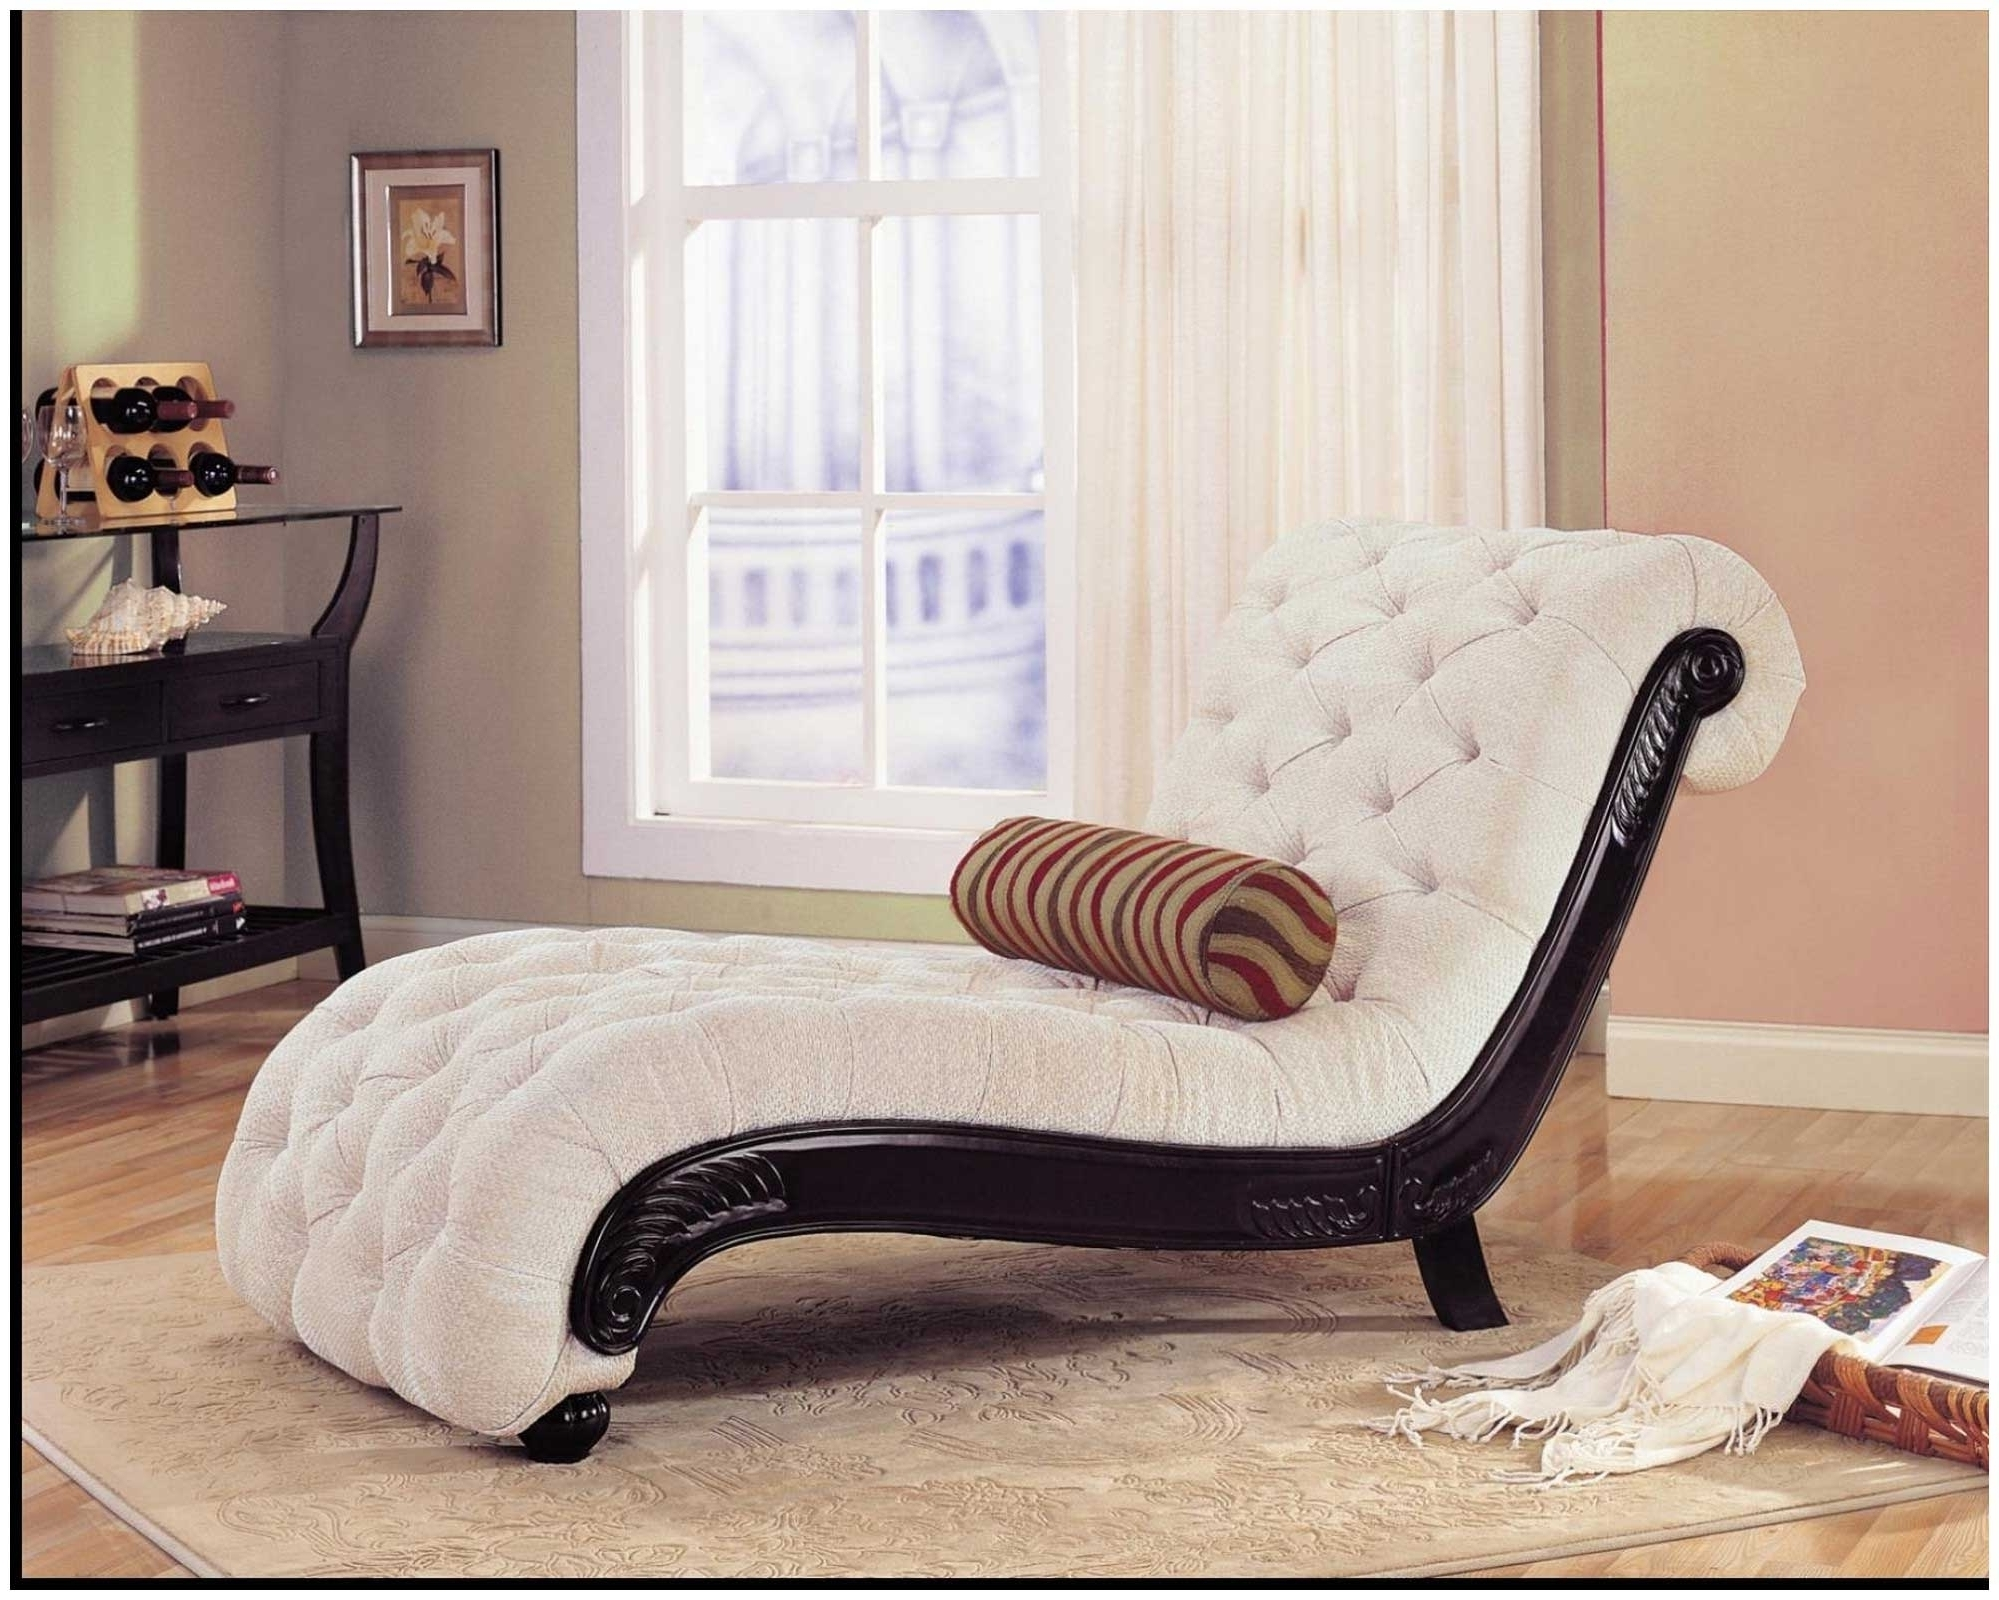 Etonnant Trendy Bedroom Loungers Small Chaise Lounge Chair Leather Inspirations With  Small Chaise Lounge Chairs For Bedroom